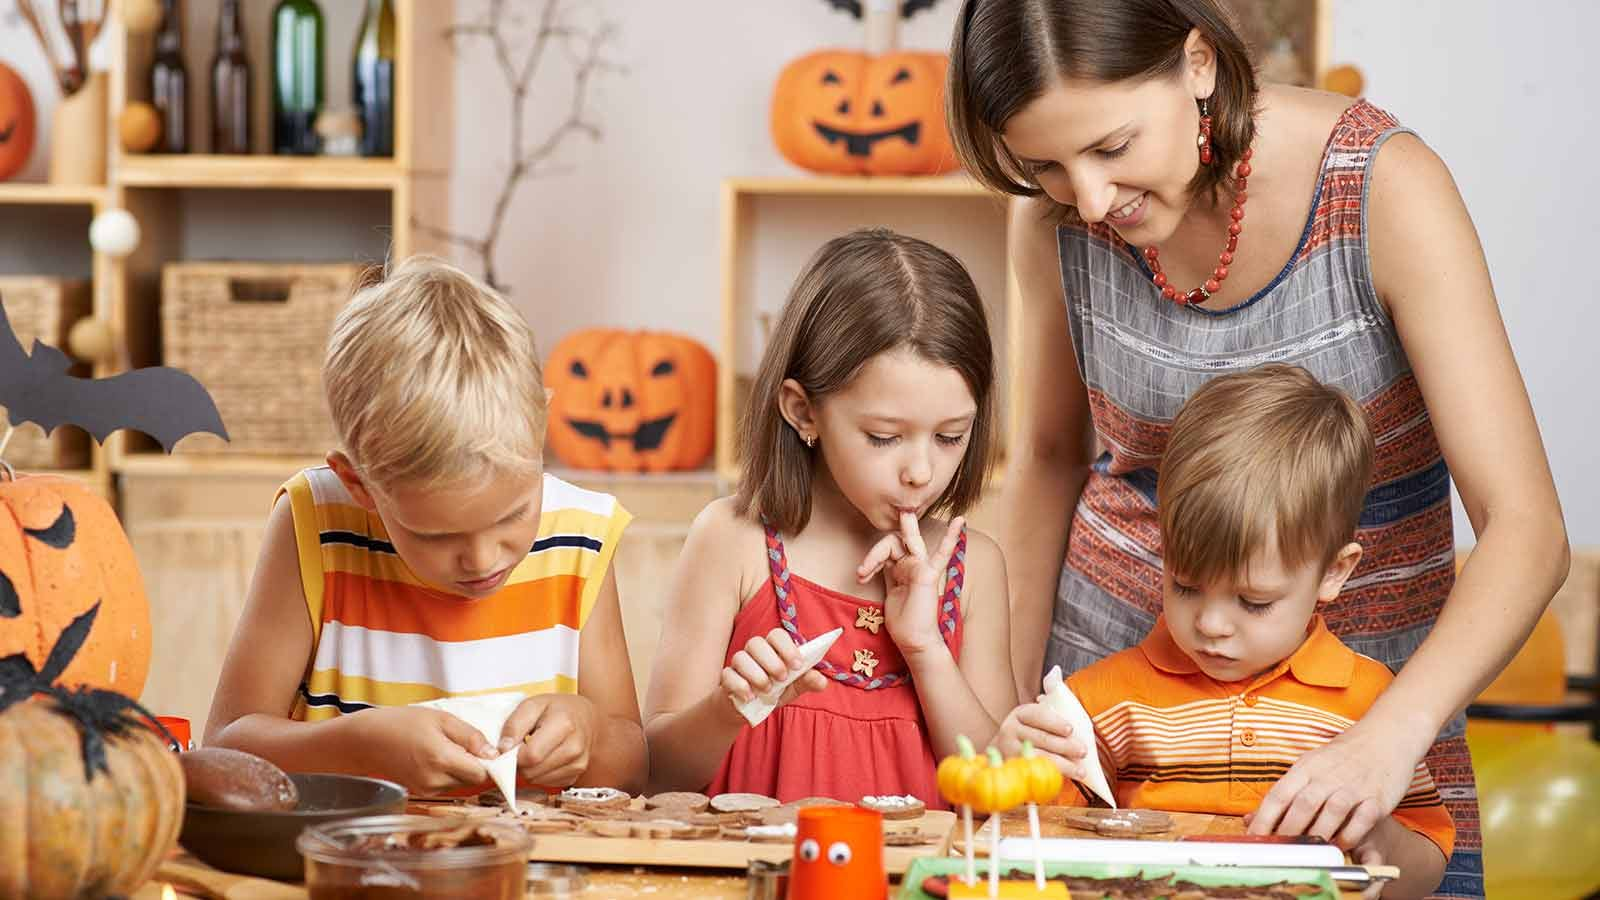 a woman helps young kids make fun Halloween treats